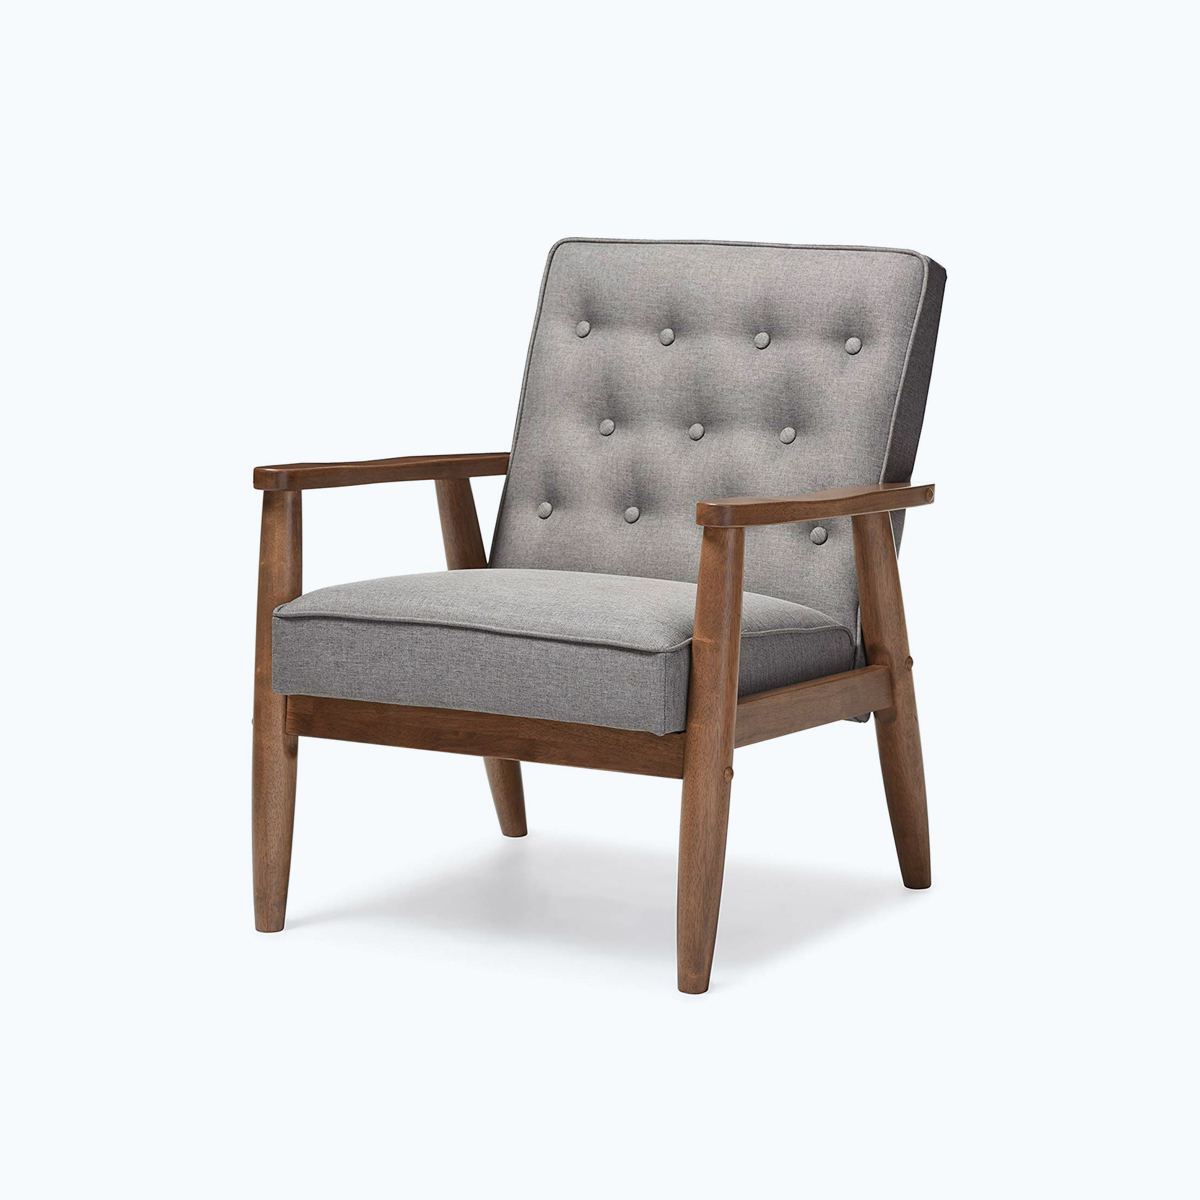 Sorrento Upholstered Wooden Lounge Chair